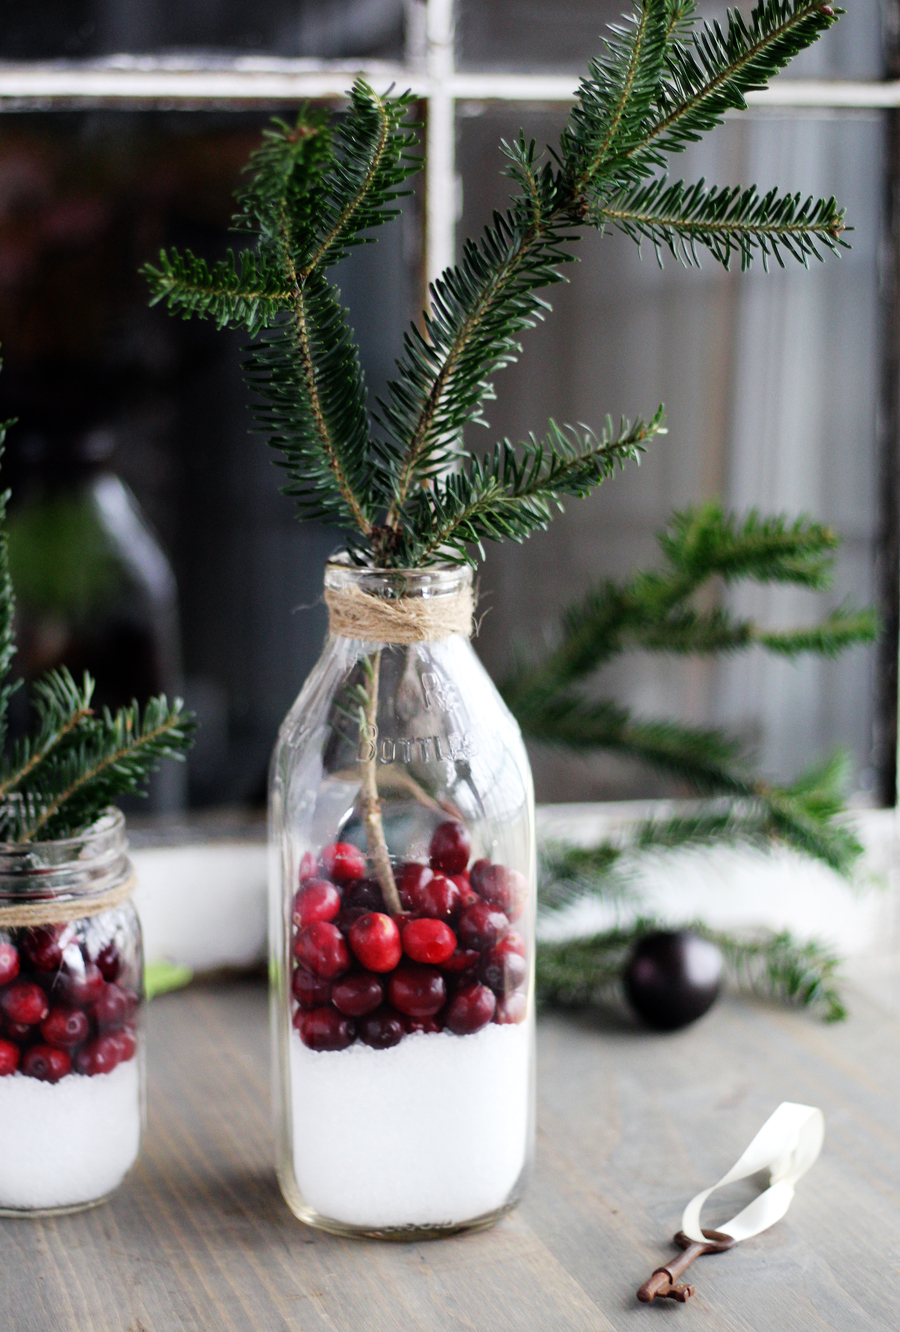 Use jars, milk bottles, or any container you'd like for this rustic Christmas decor idea.